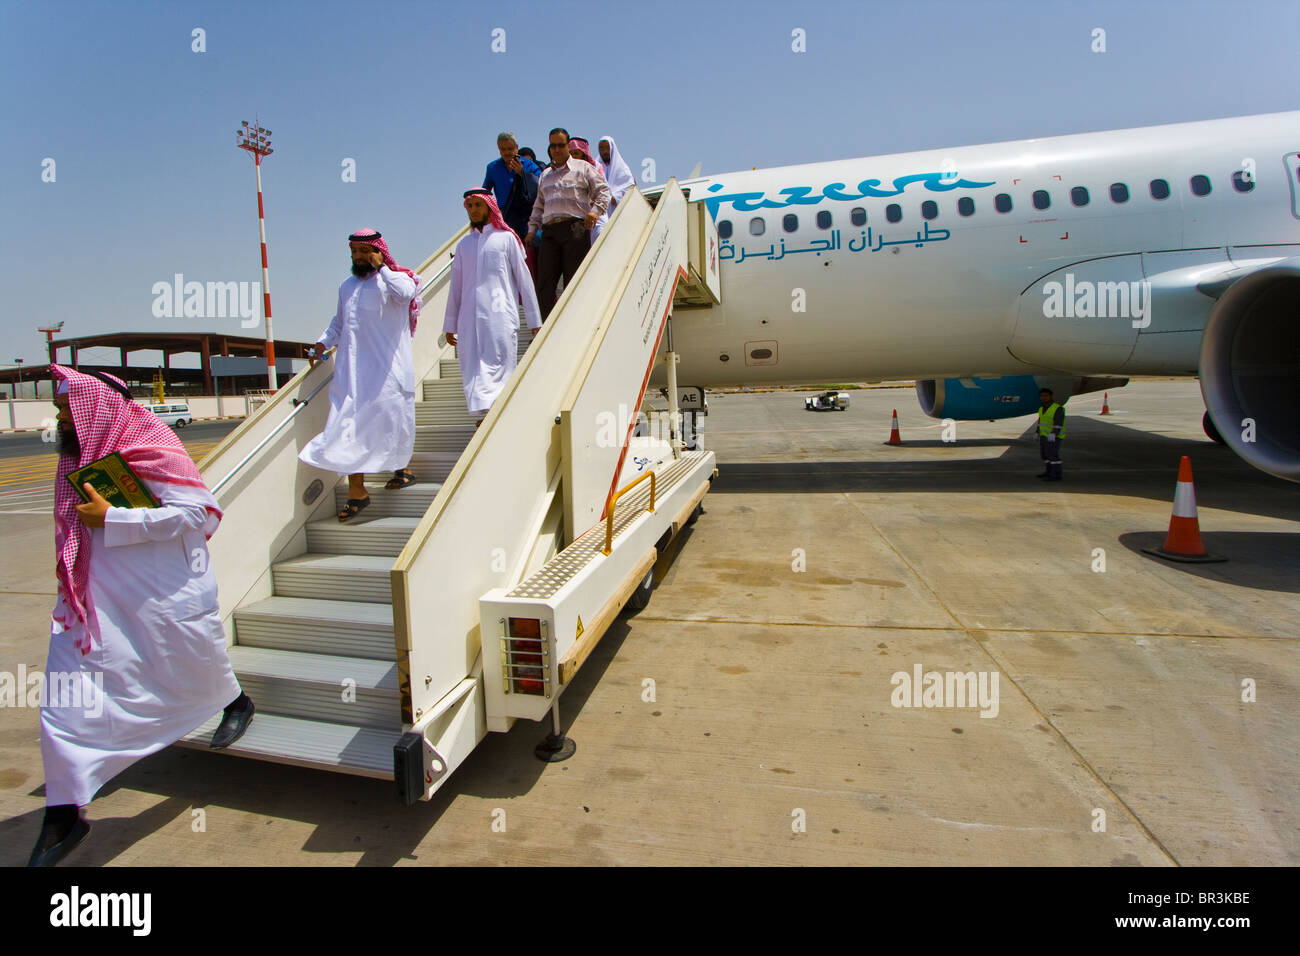 Jazeera Airways Airplane disembarking at Kuwait International Airport - Stock Image